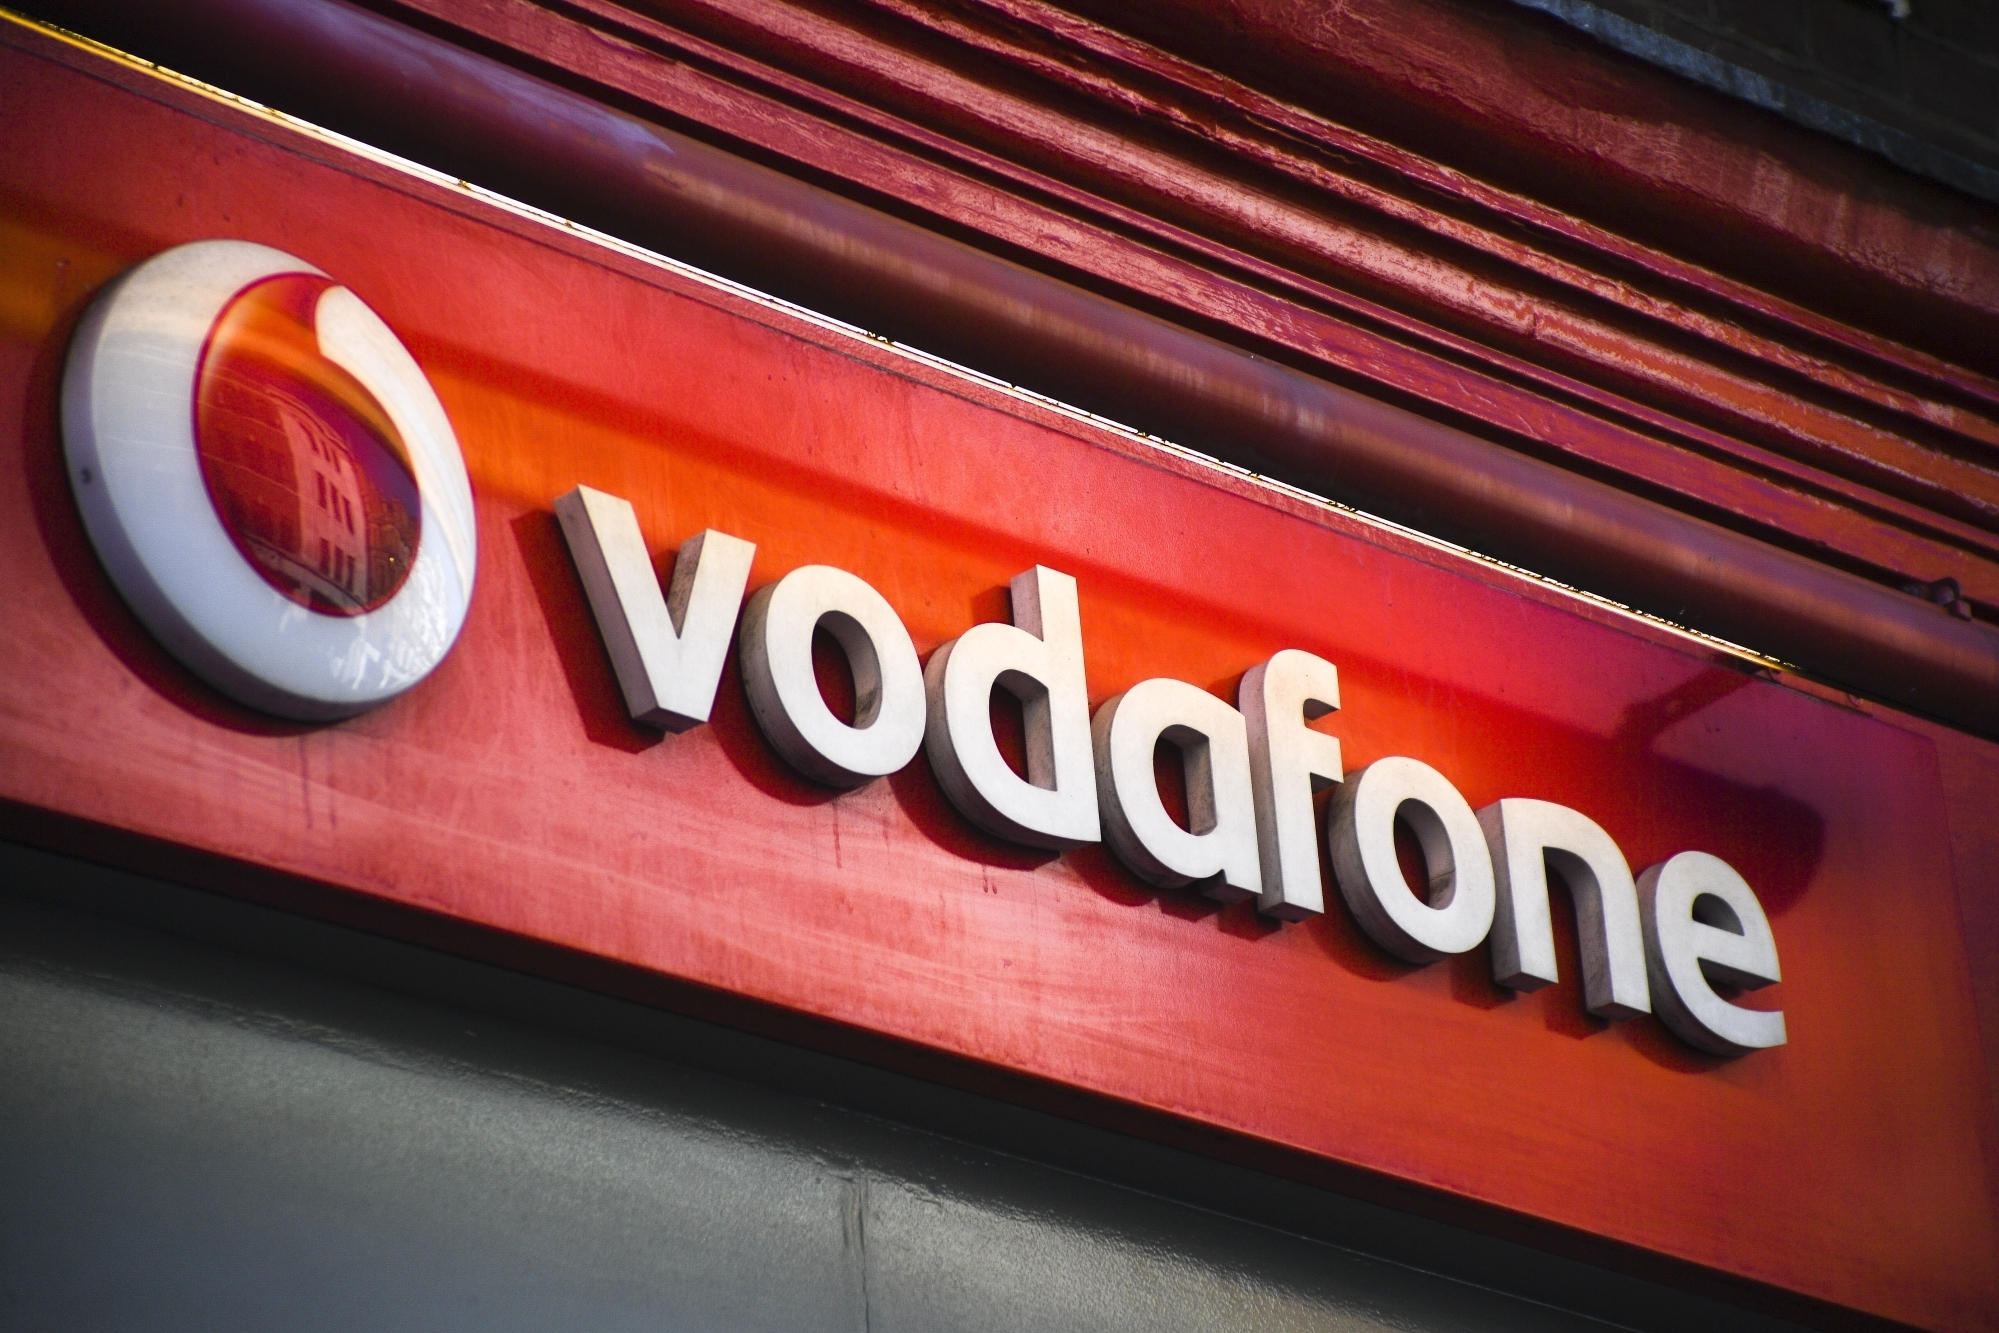 Vodafone. (File Photo: IANS) by .